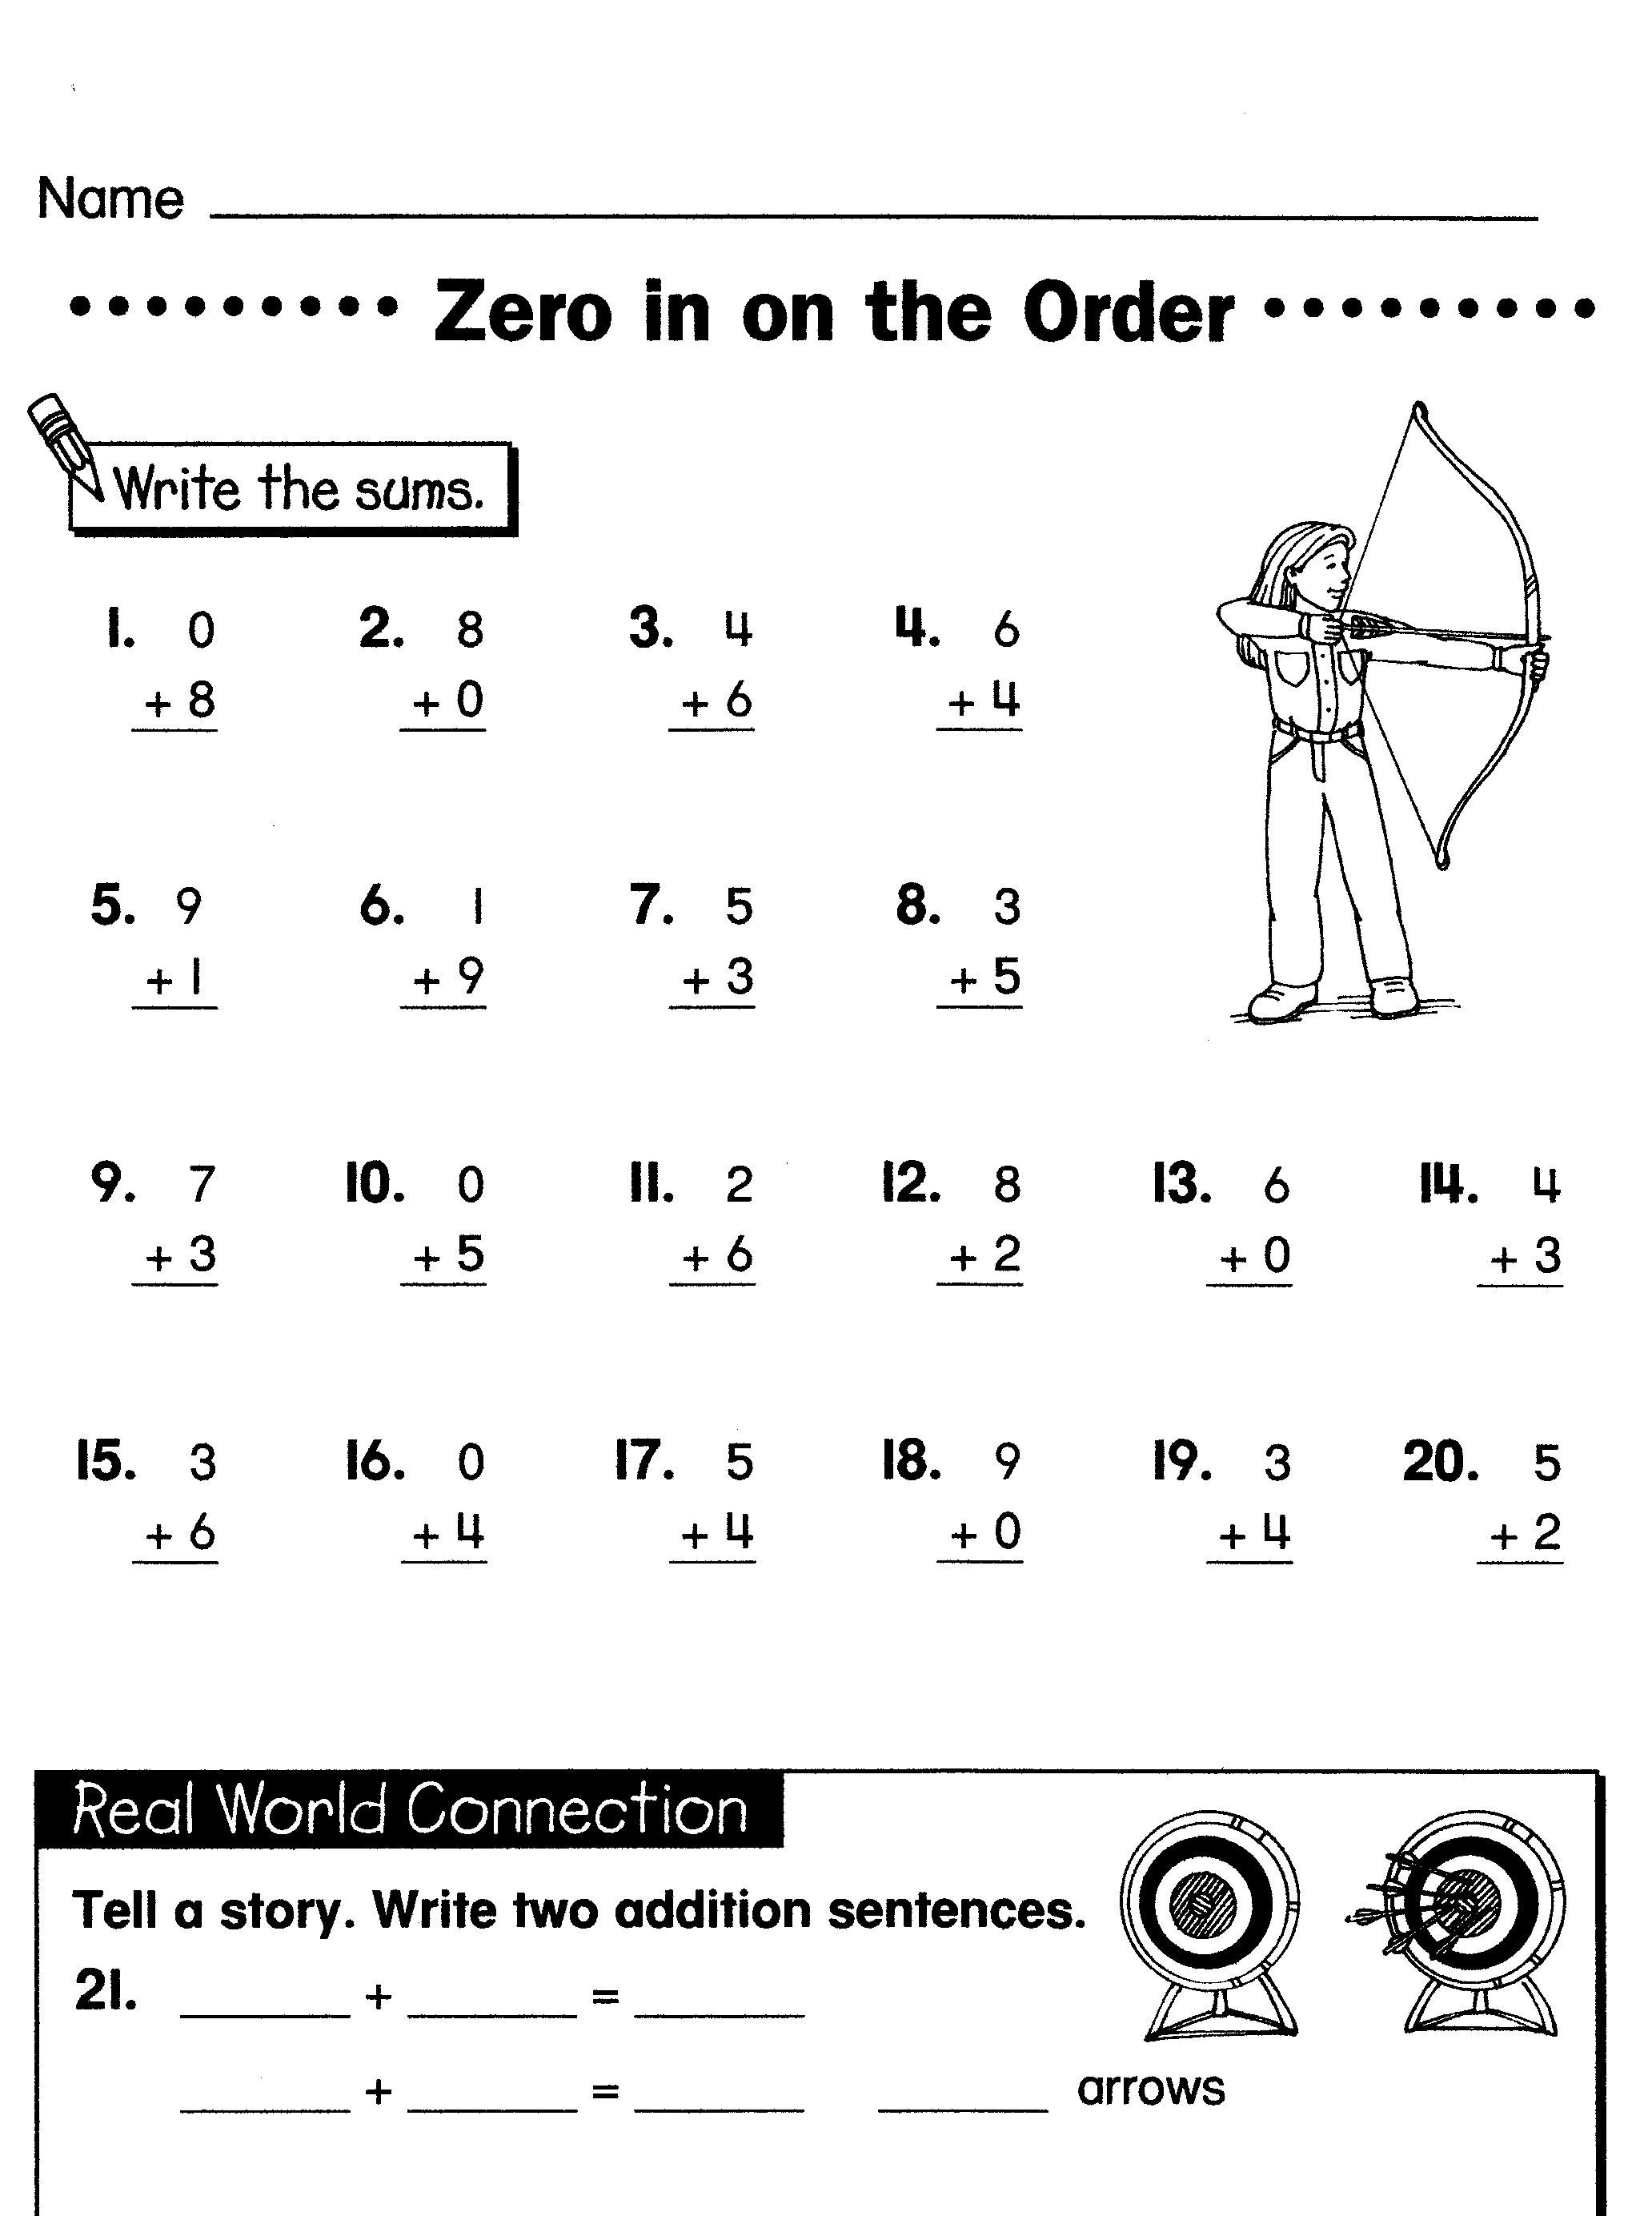 Worksheets Free 9th Grade Worksheets math sheets for grade 1 kiddo shelter kids worksheets printable to help your first elementary school learning mathematics effectively include the worksheet engl